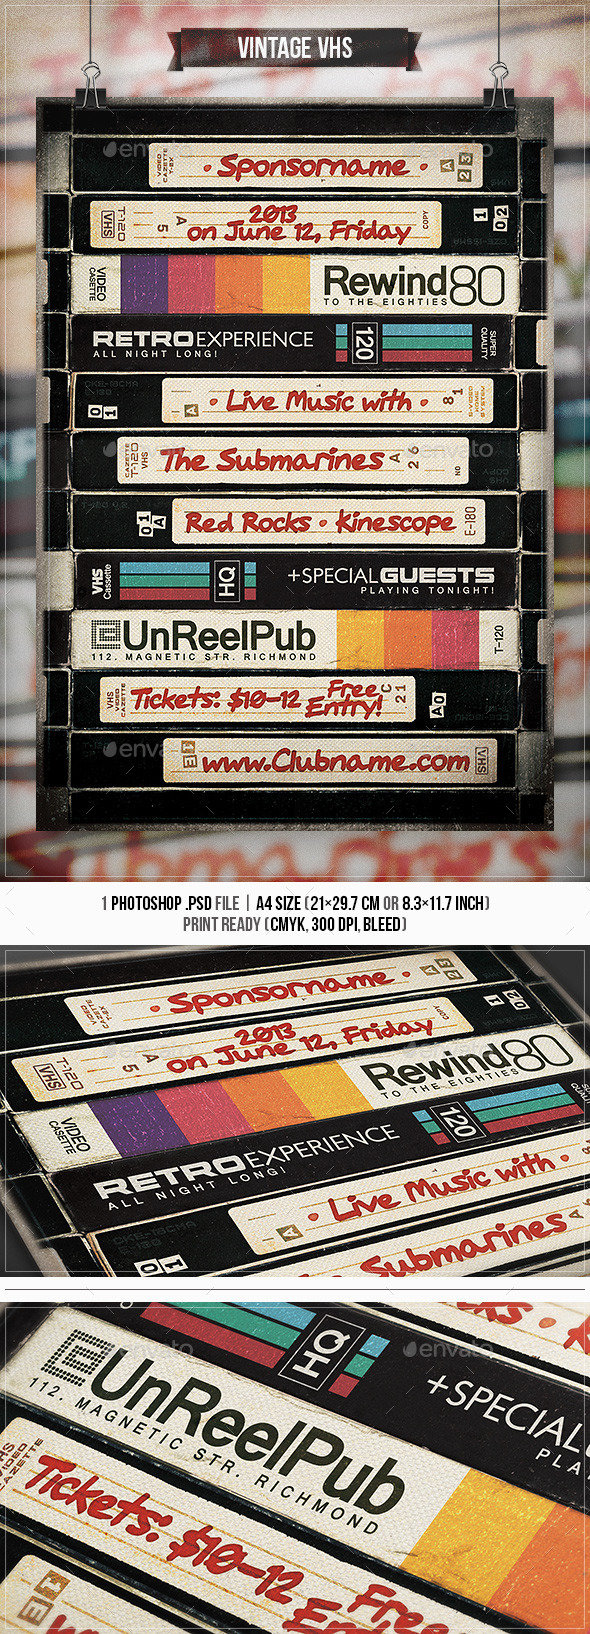 Vhs Graphics, Designs & Templates from GraphicRiver